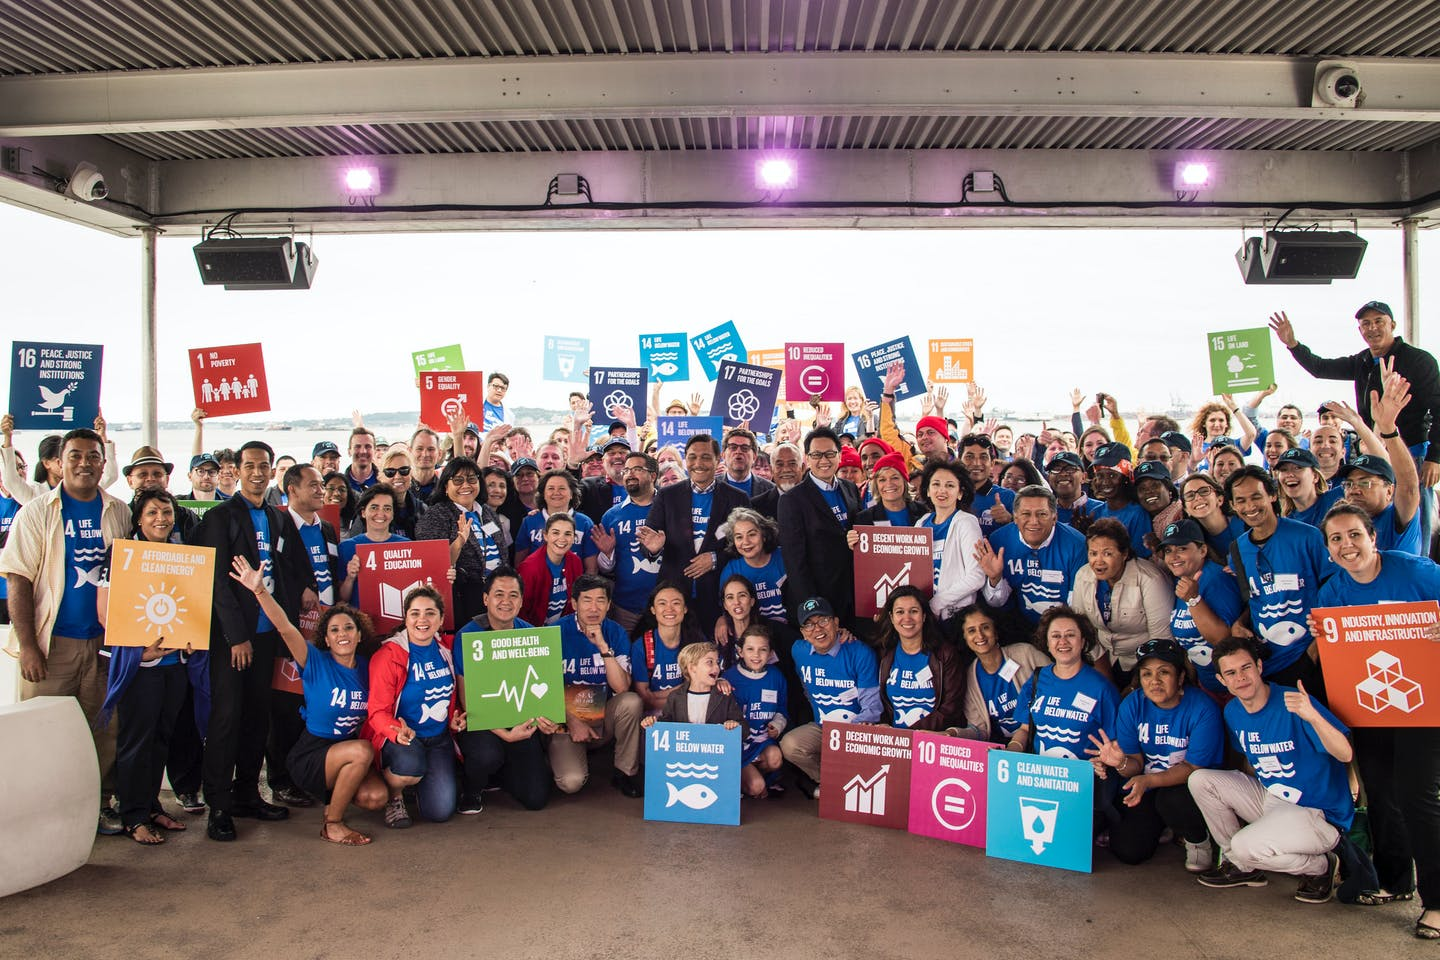 Participants at an event in the US promoting SDG 14, life below water